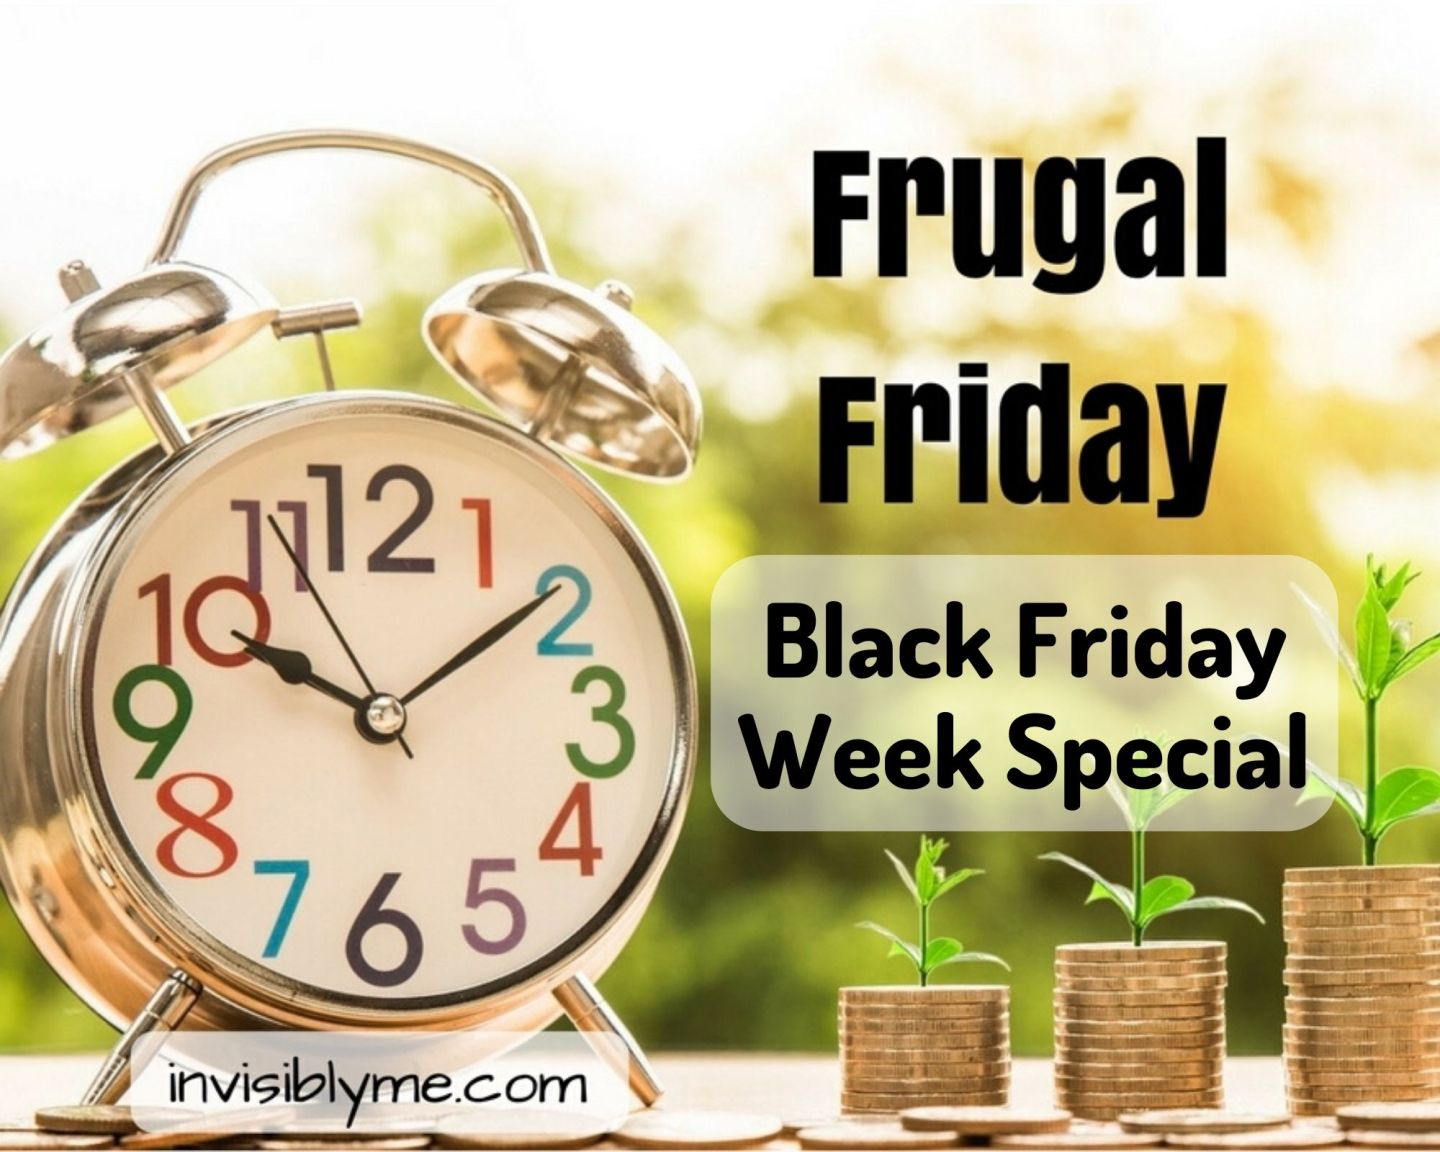 Frugal Friday : Black Friday Week Special